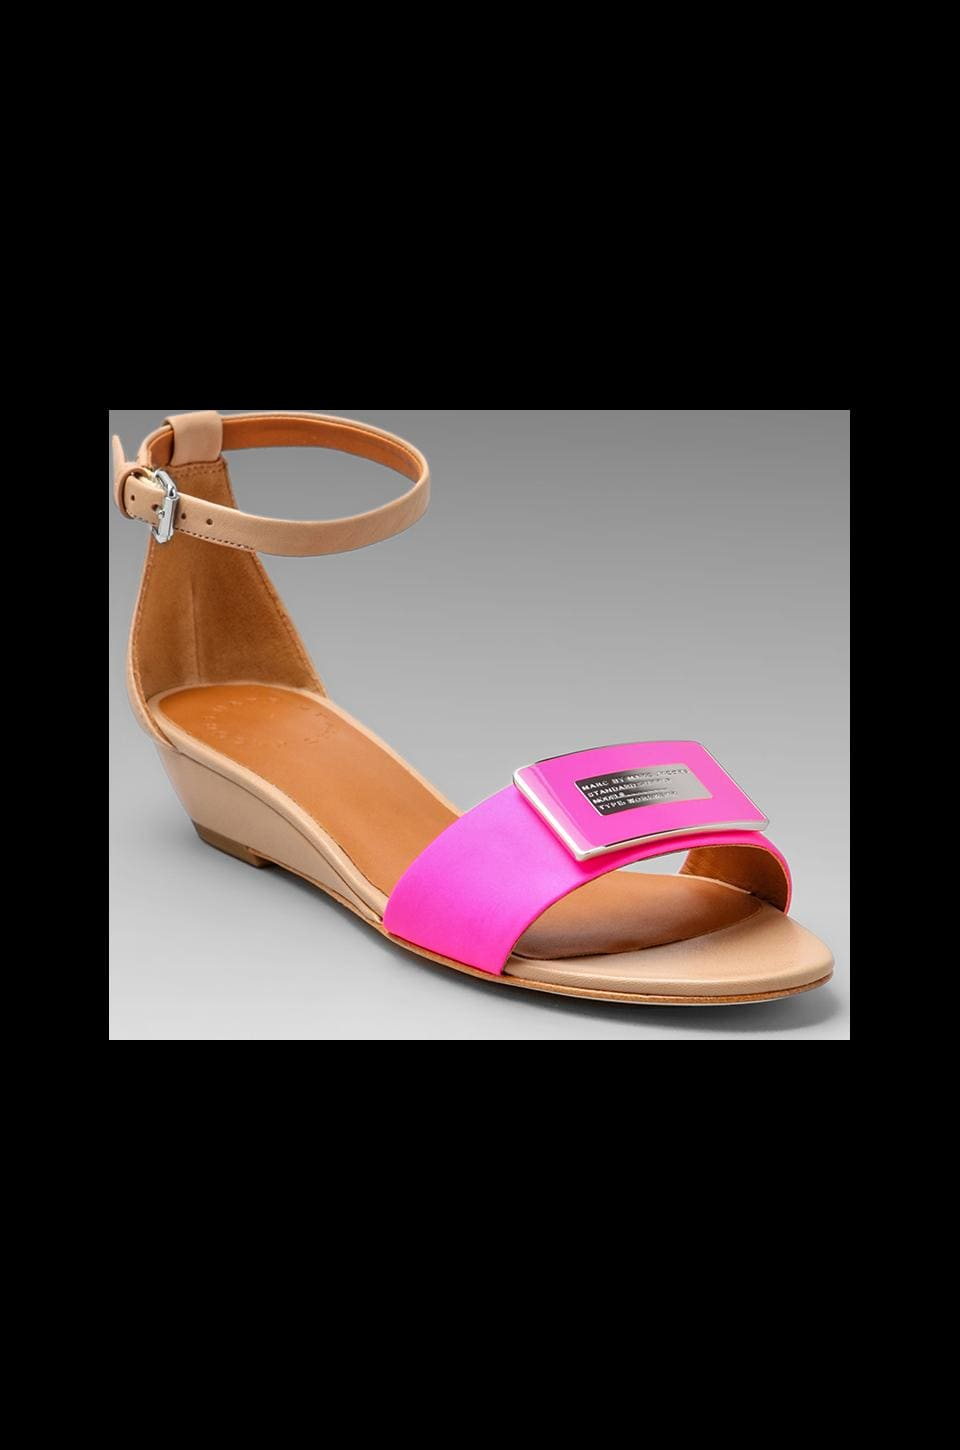 Marc by Marc Jacobs Neon Logo Mini Wedge Sandal in Nude and Fluor Pink